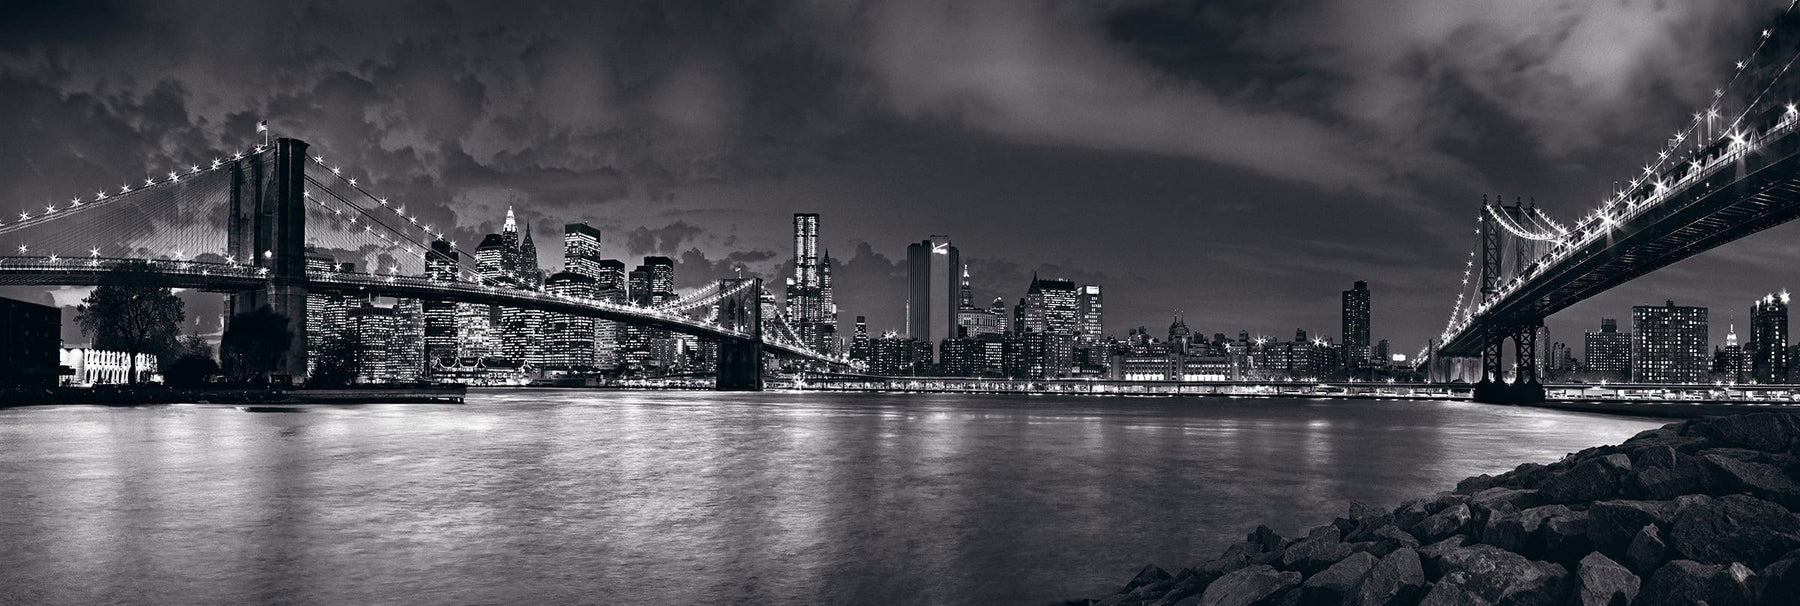 Black and white rocky rivers edge looking across to the lit up bridges leading into the New York cityscape